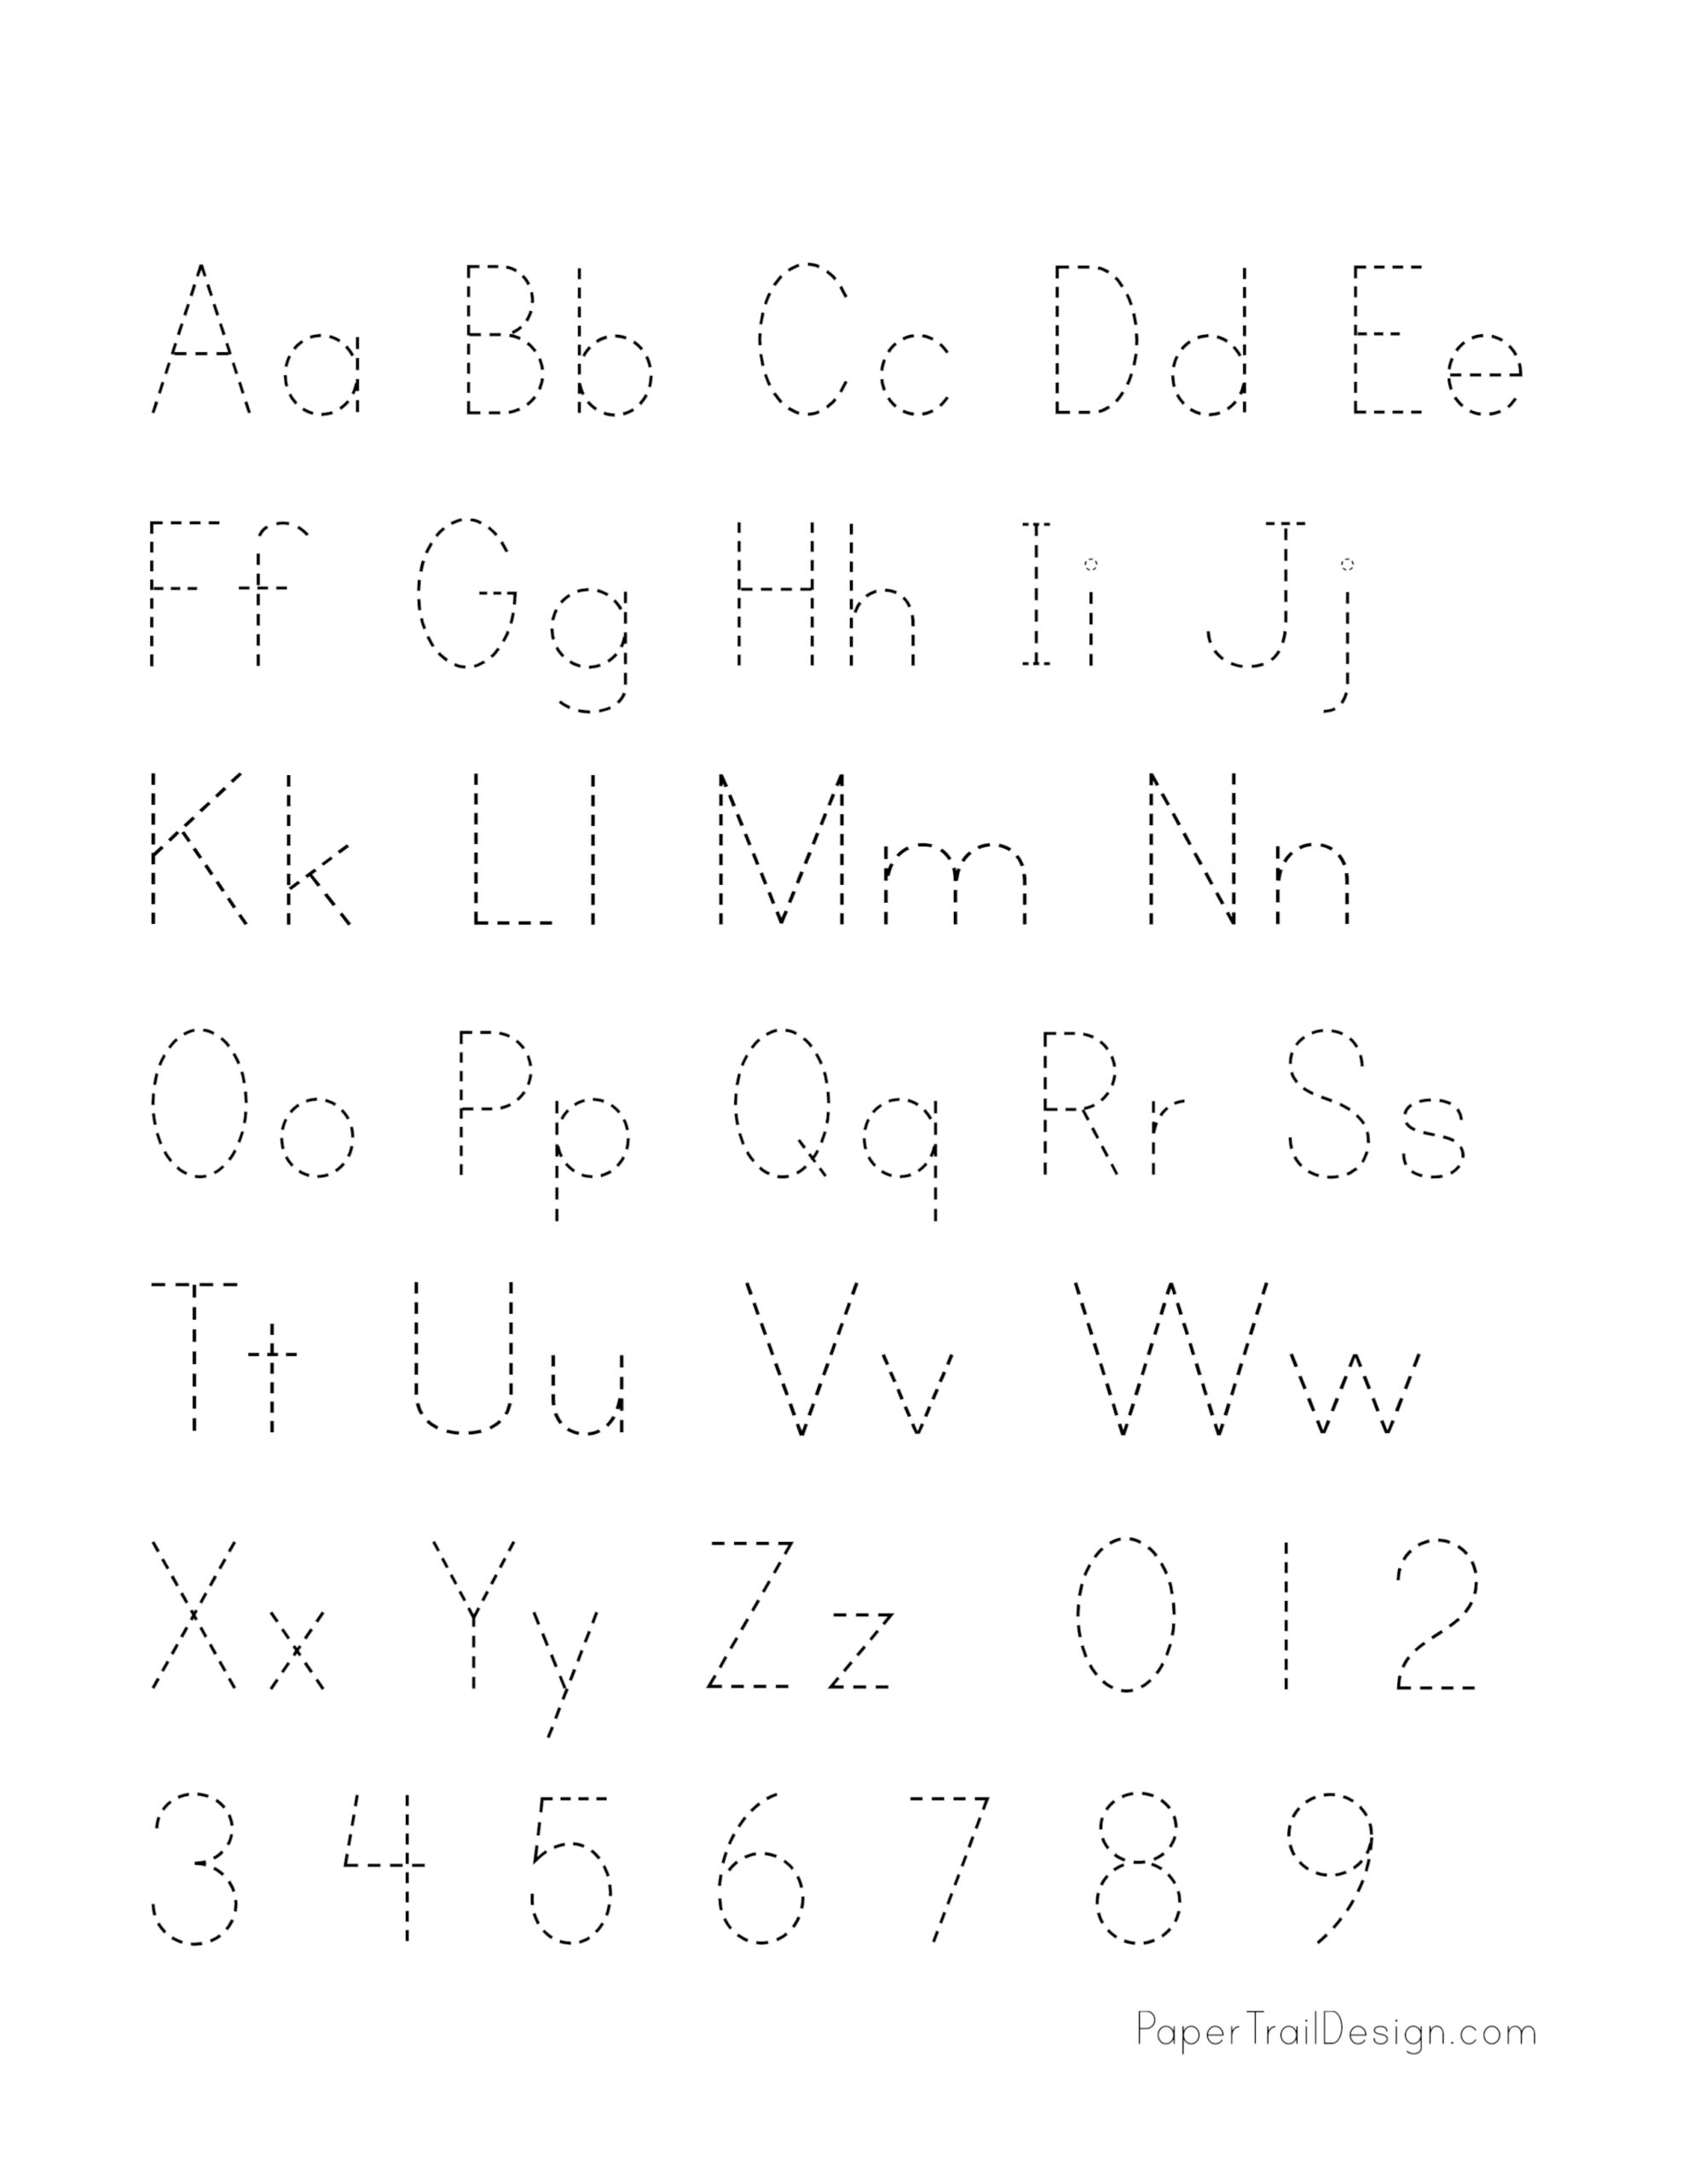 hight resolution of Free Printable Alphabet Handwriting Practice Sheets   Paper Trail Design